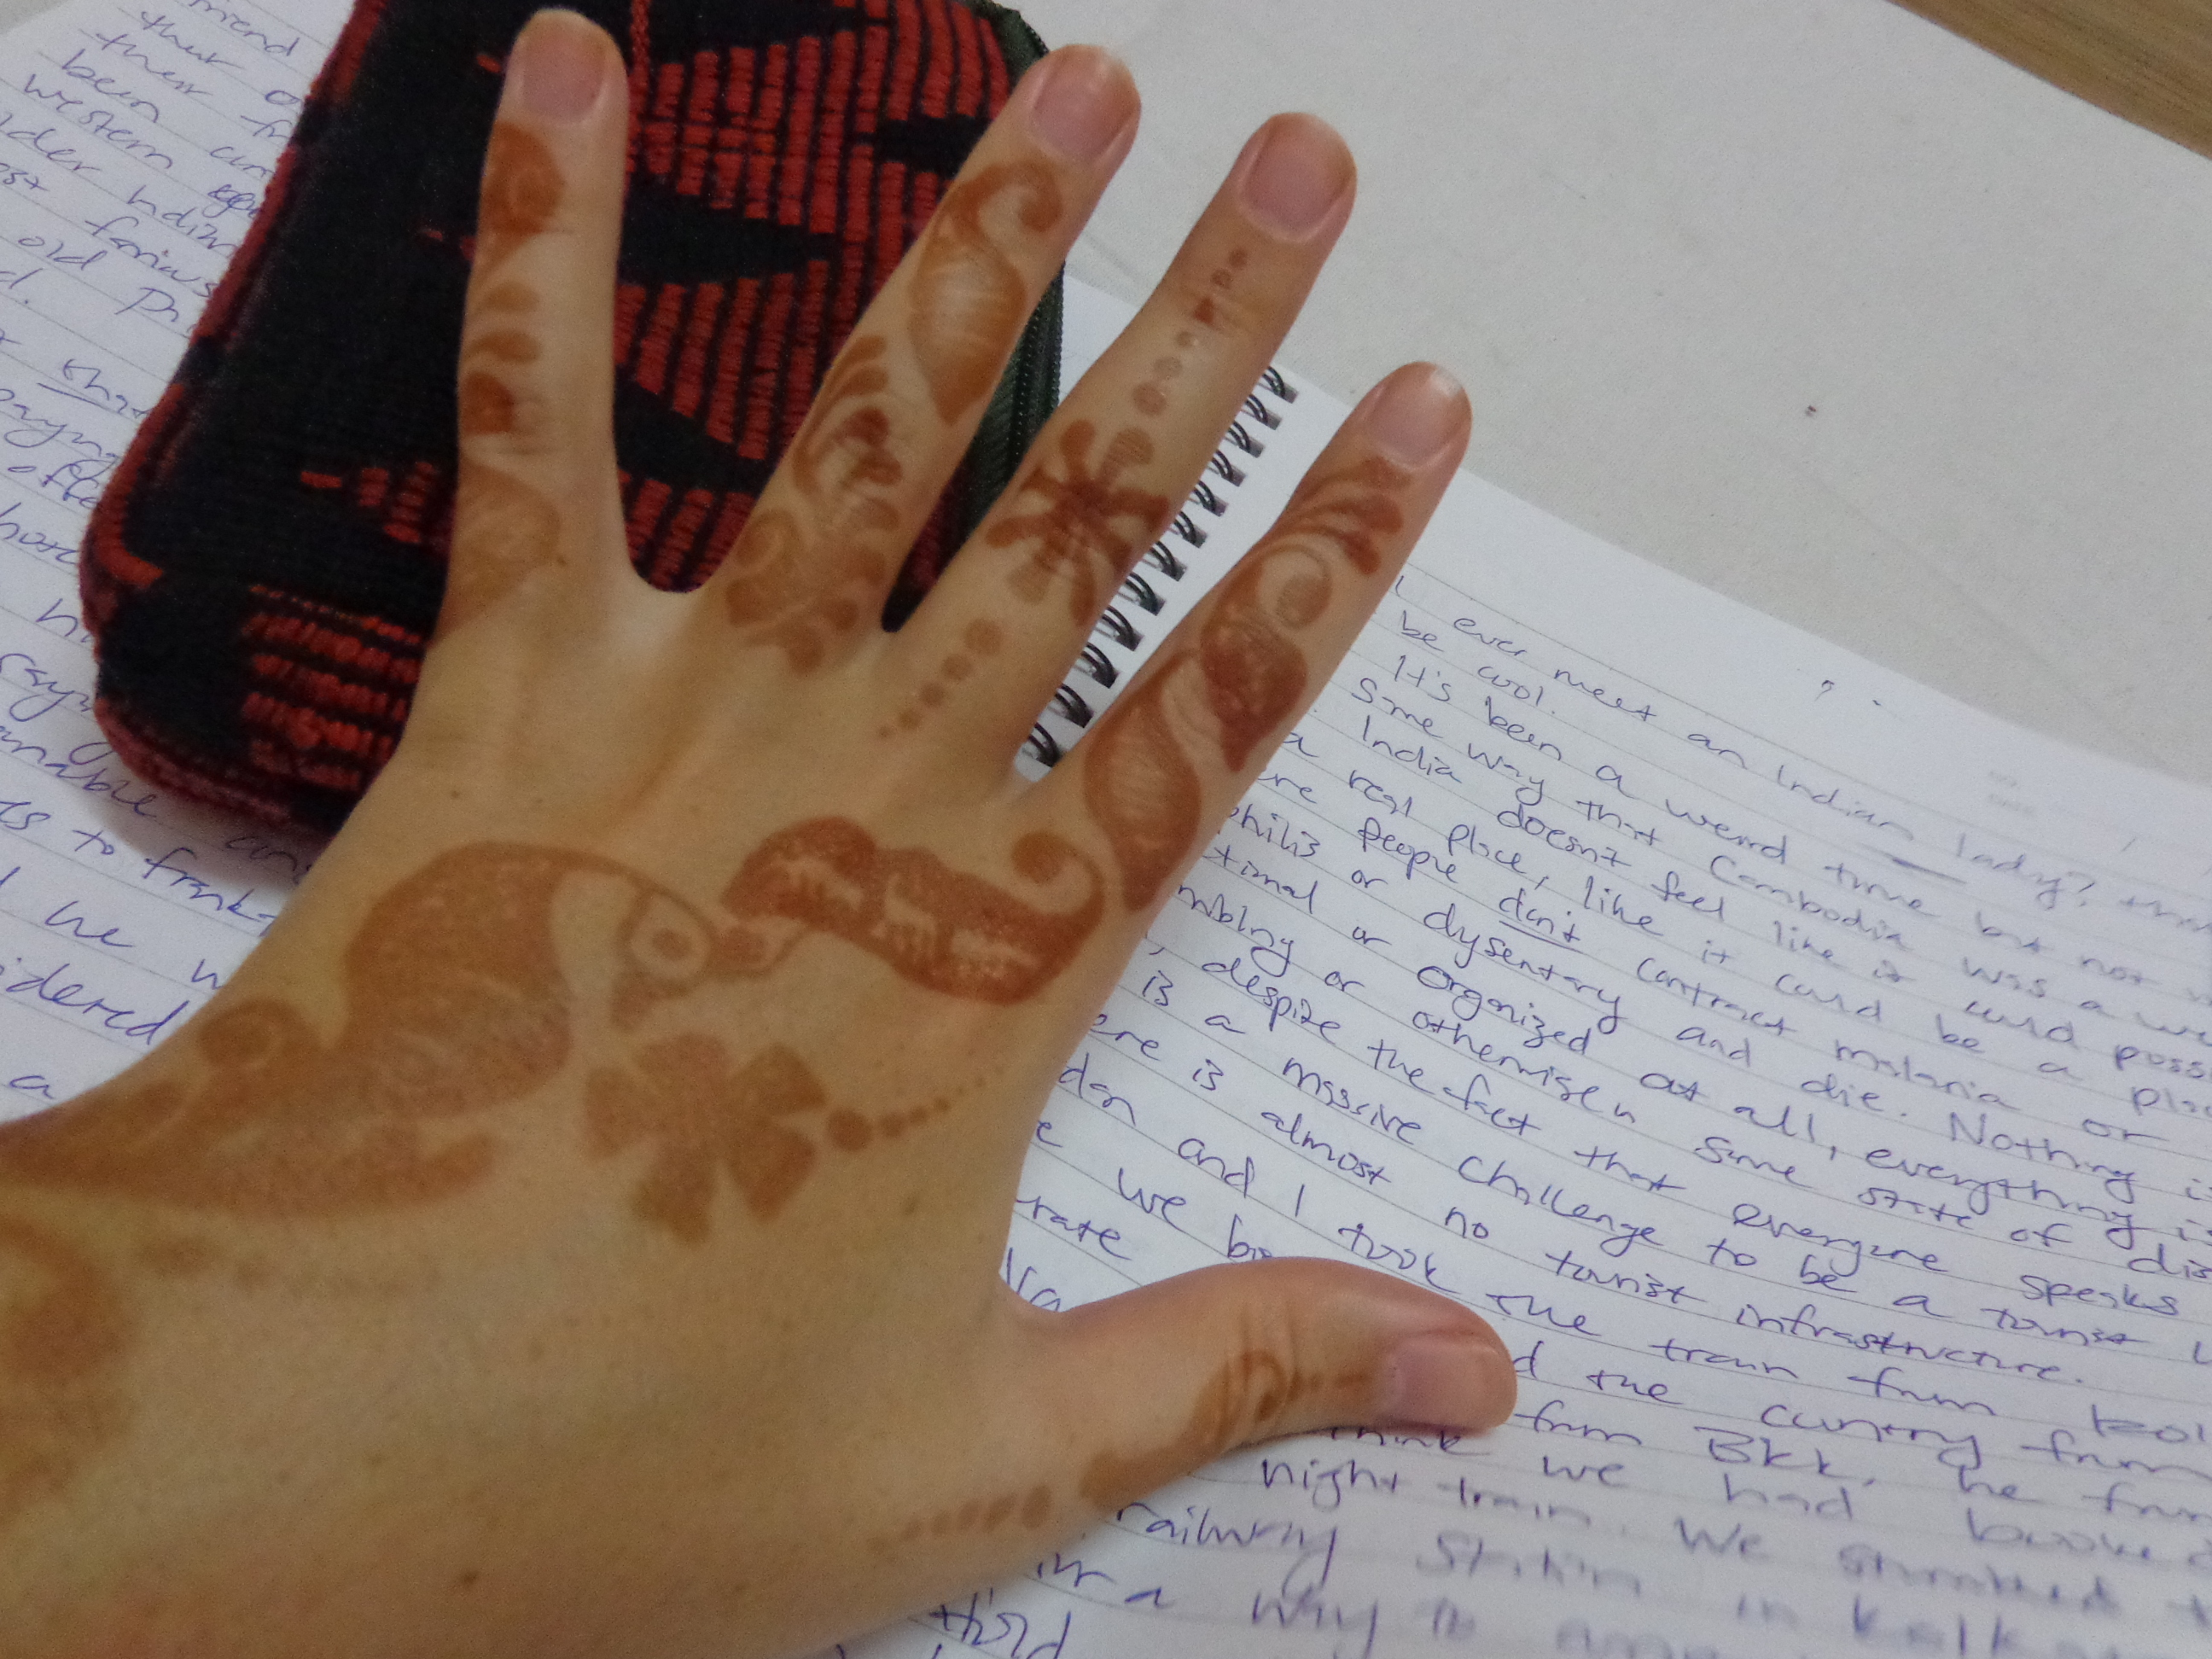 Writing in my journal while in India